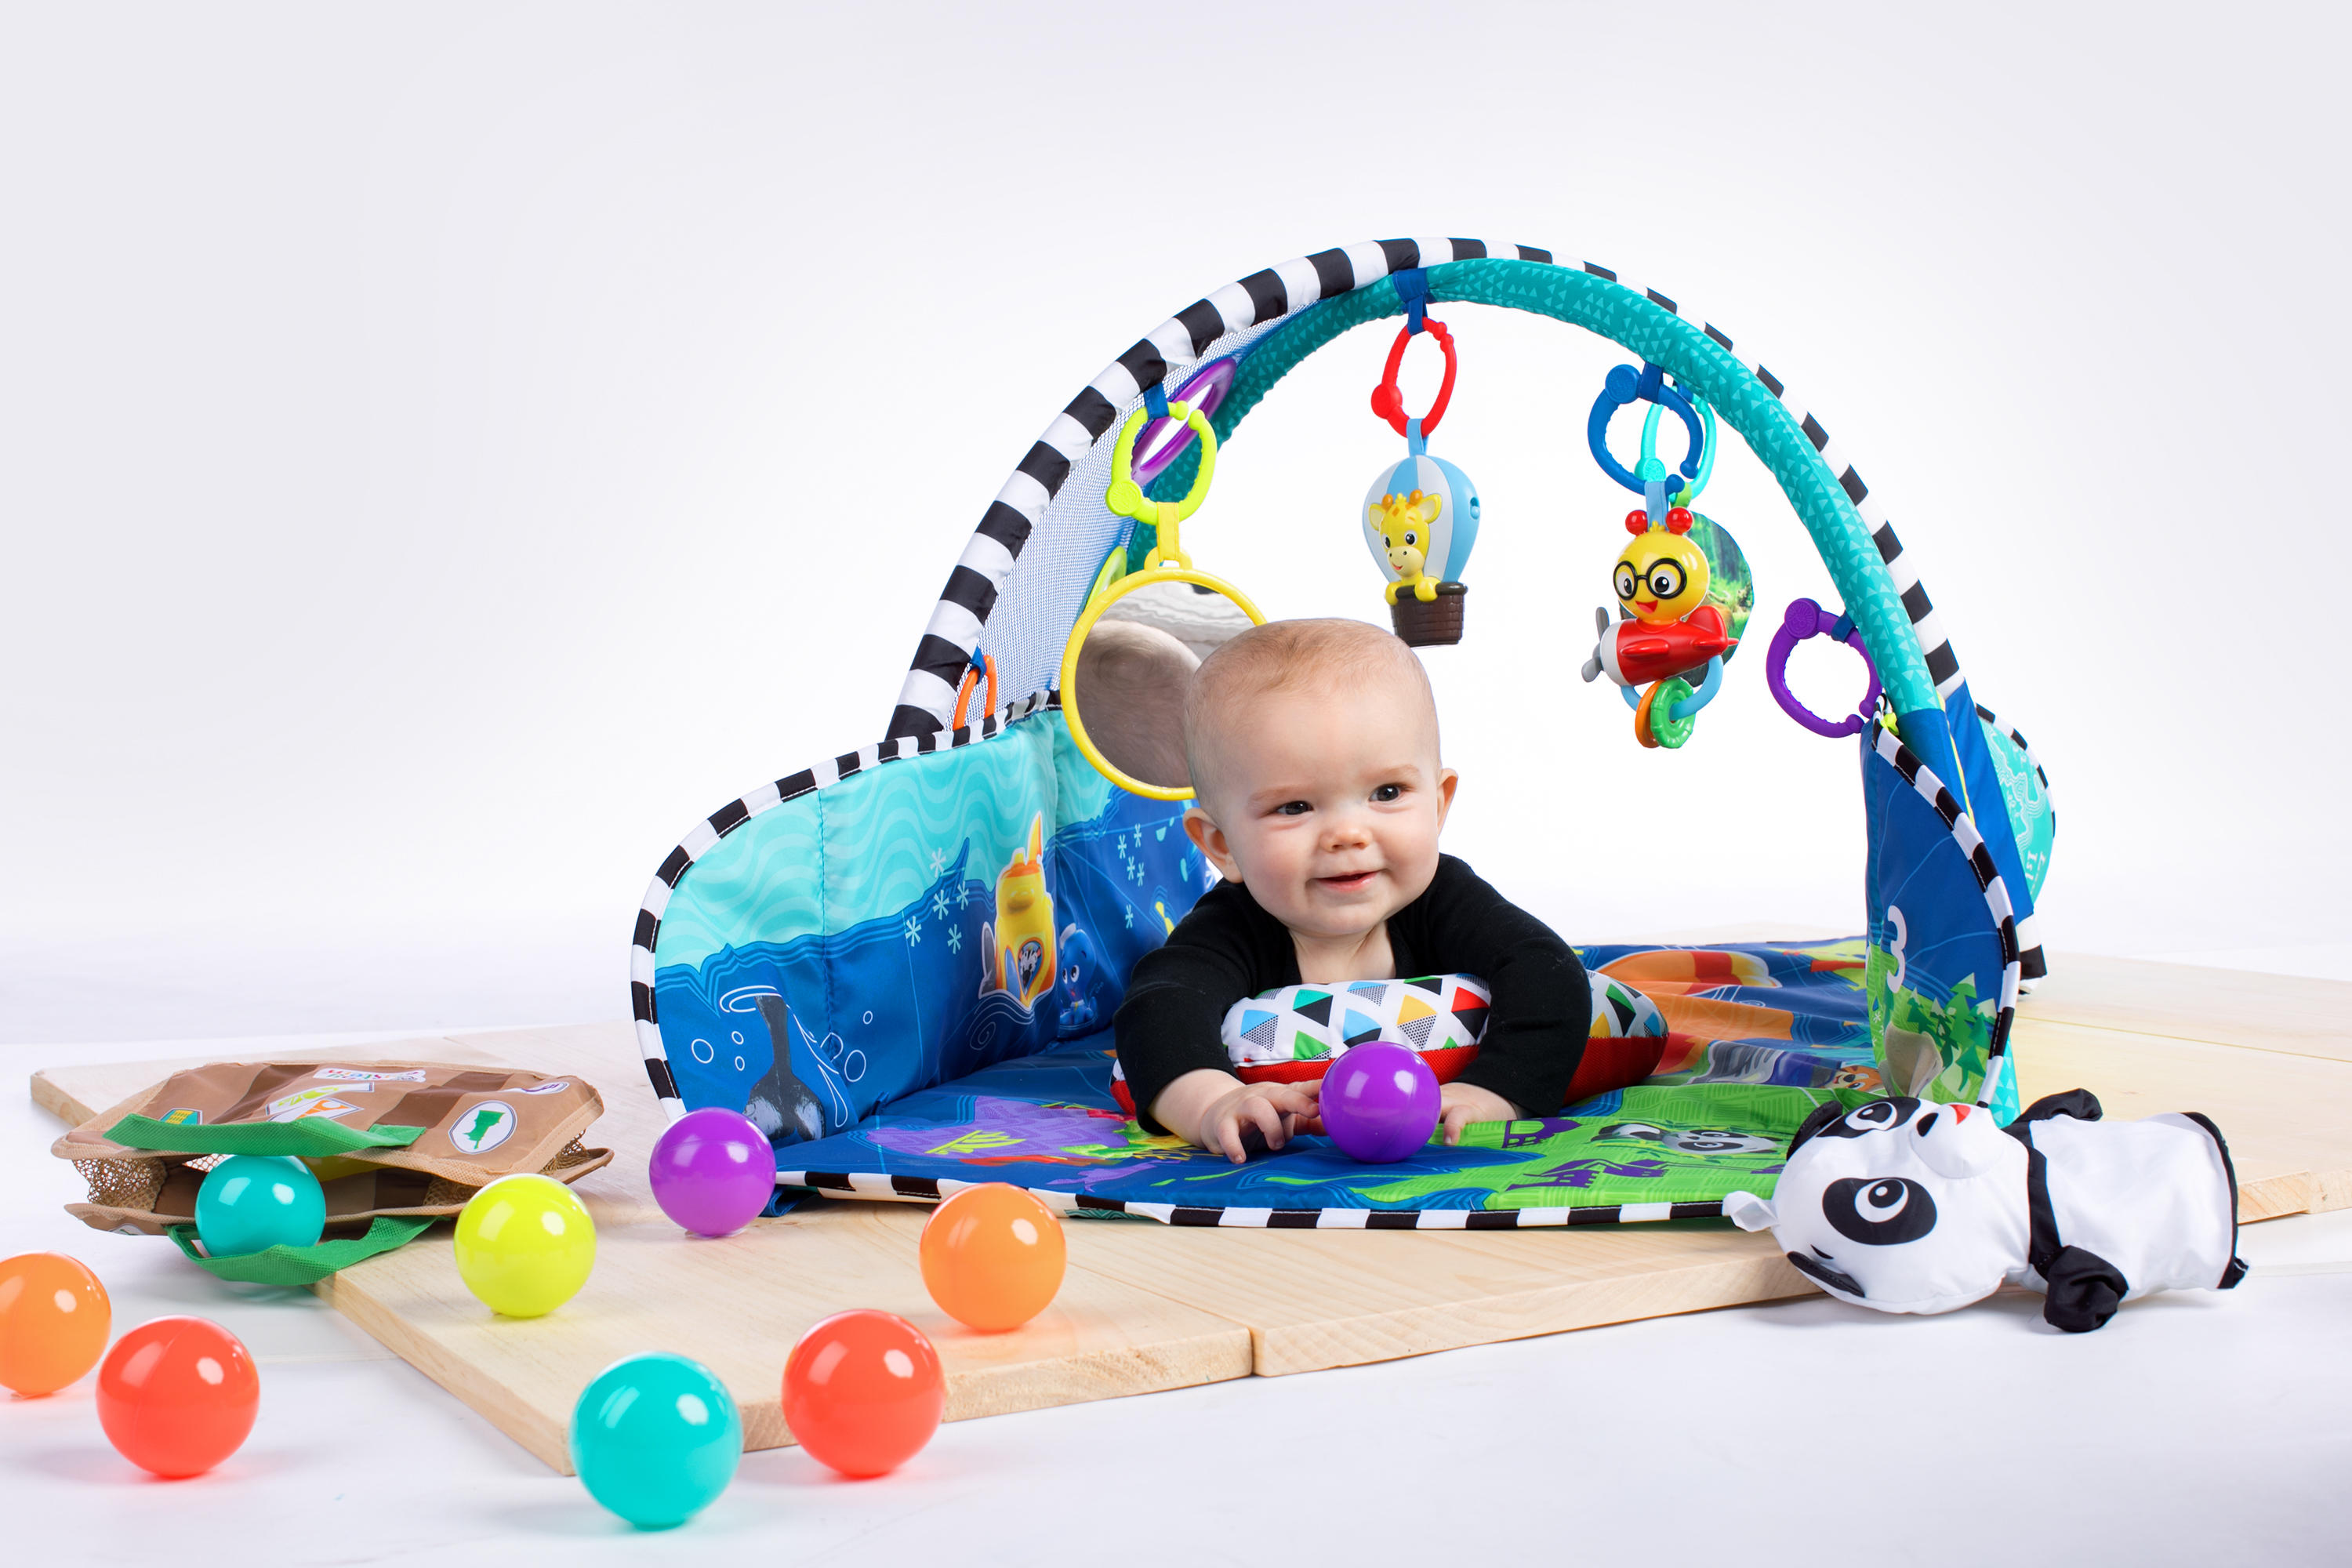 5 In 1 Journey Of Discovery Activity Gym